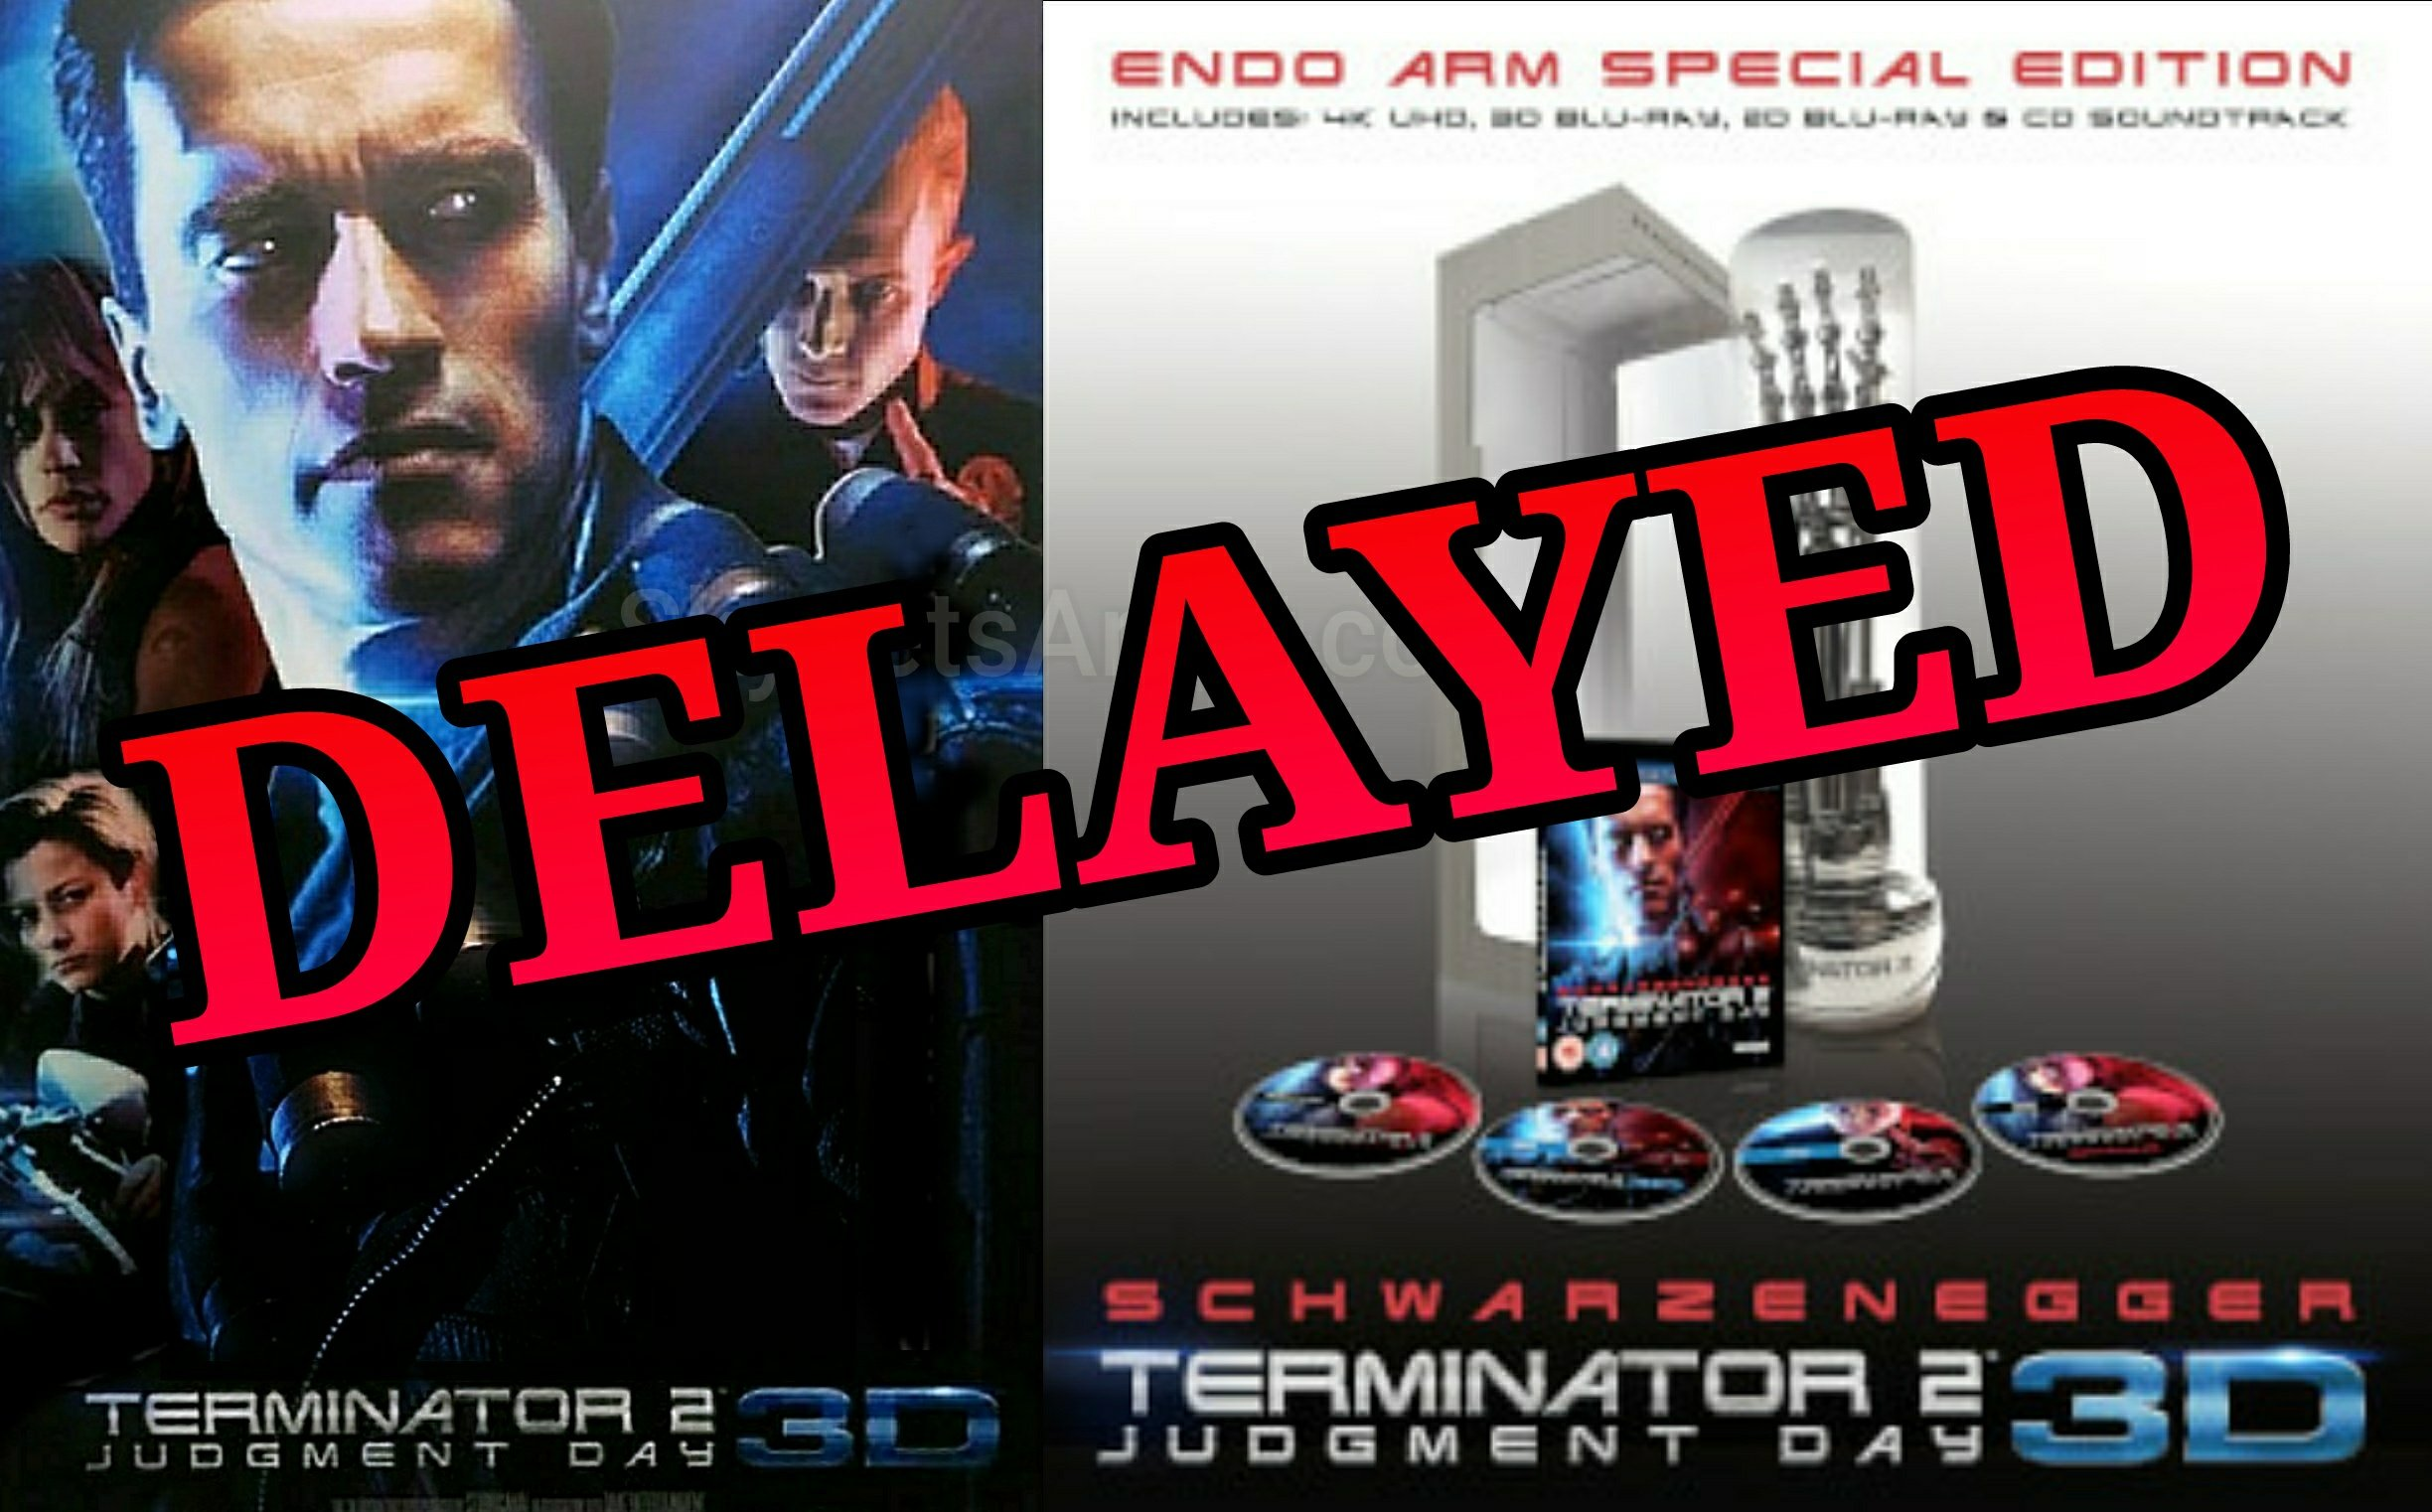 Late July It Was Announced That Terminator 2 Judgment Day Is Coming To Home Video This October 3rd In The United States Released By Lionsgate